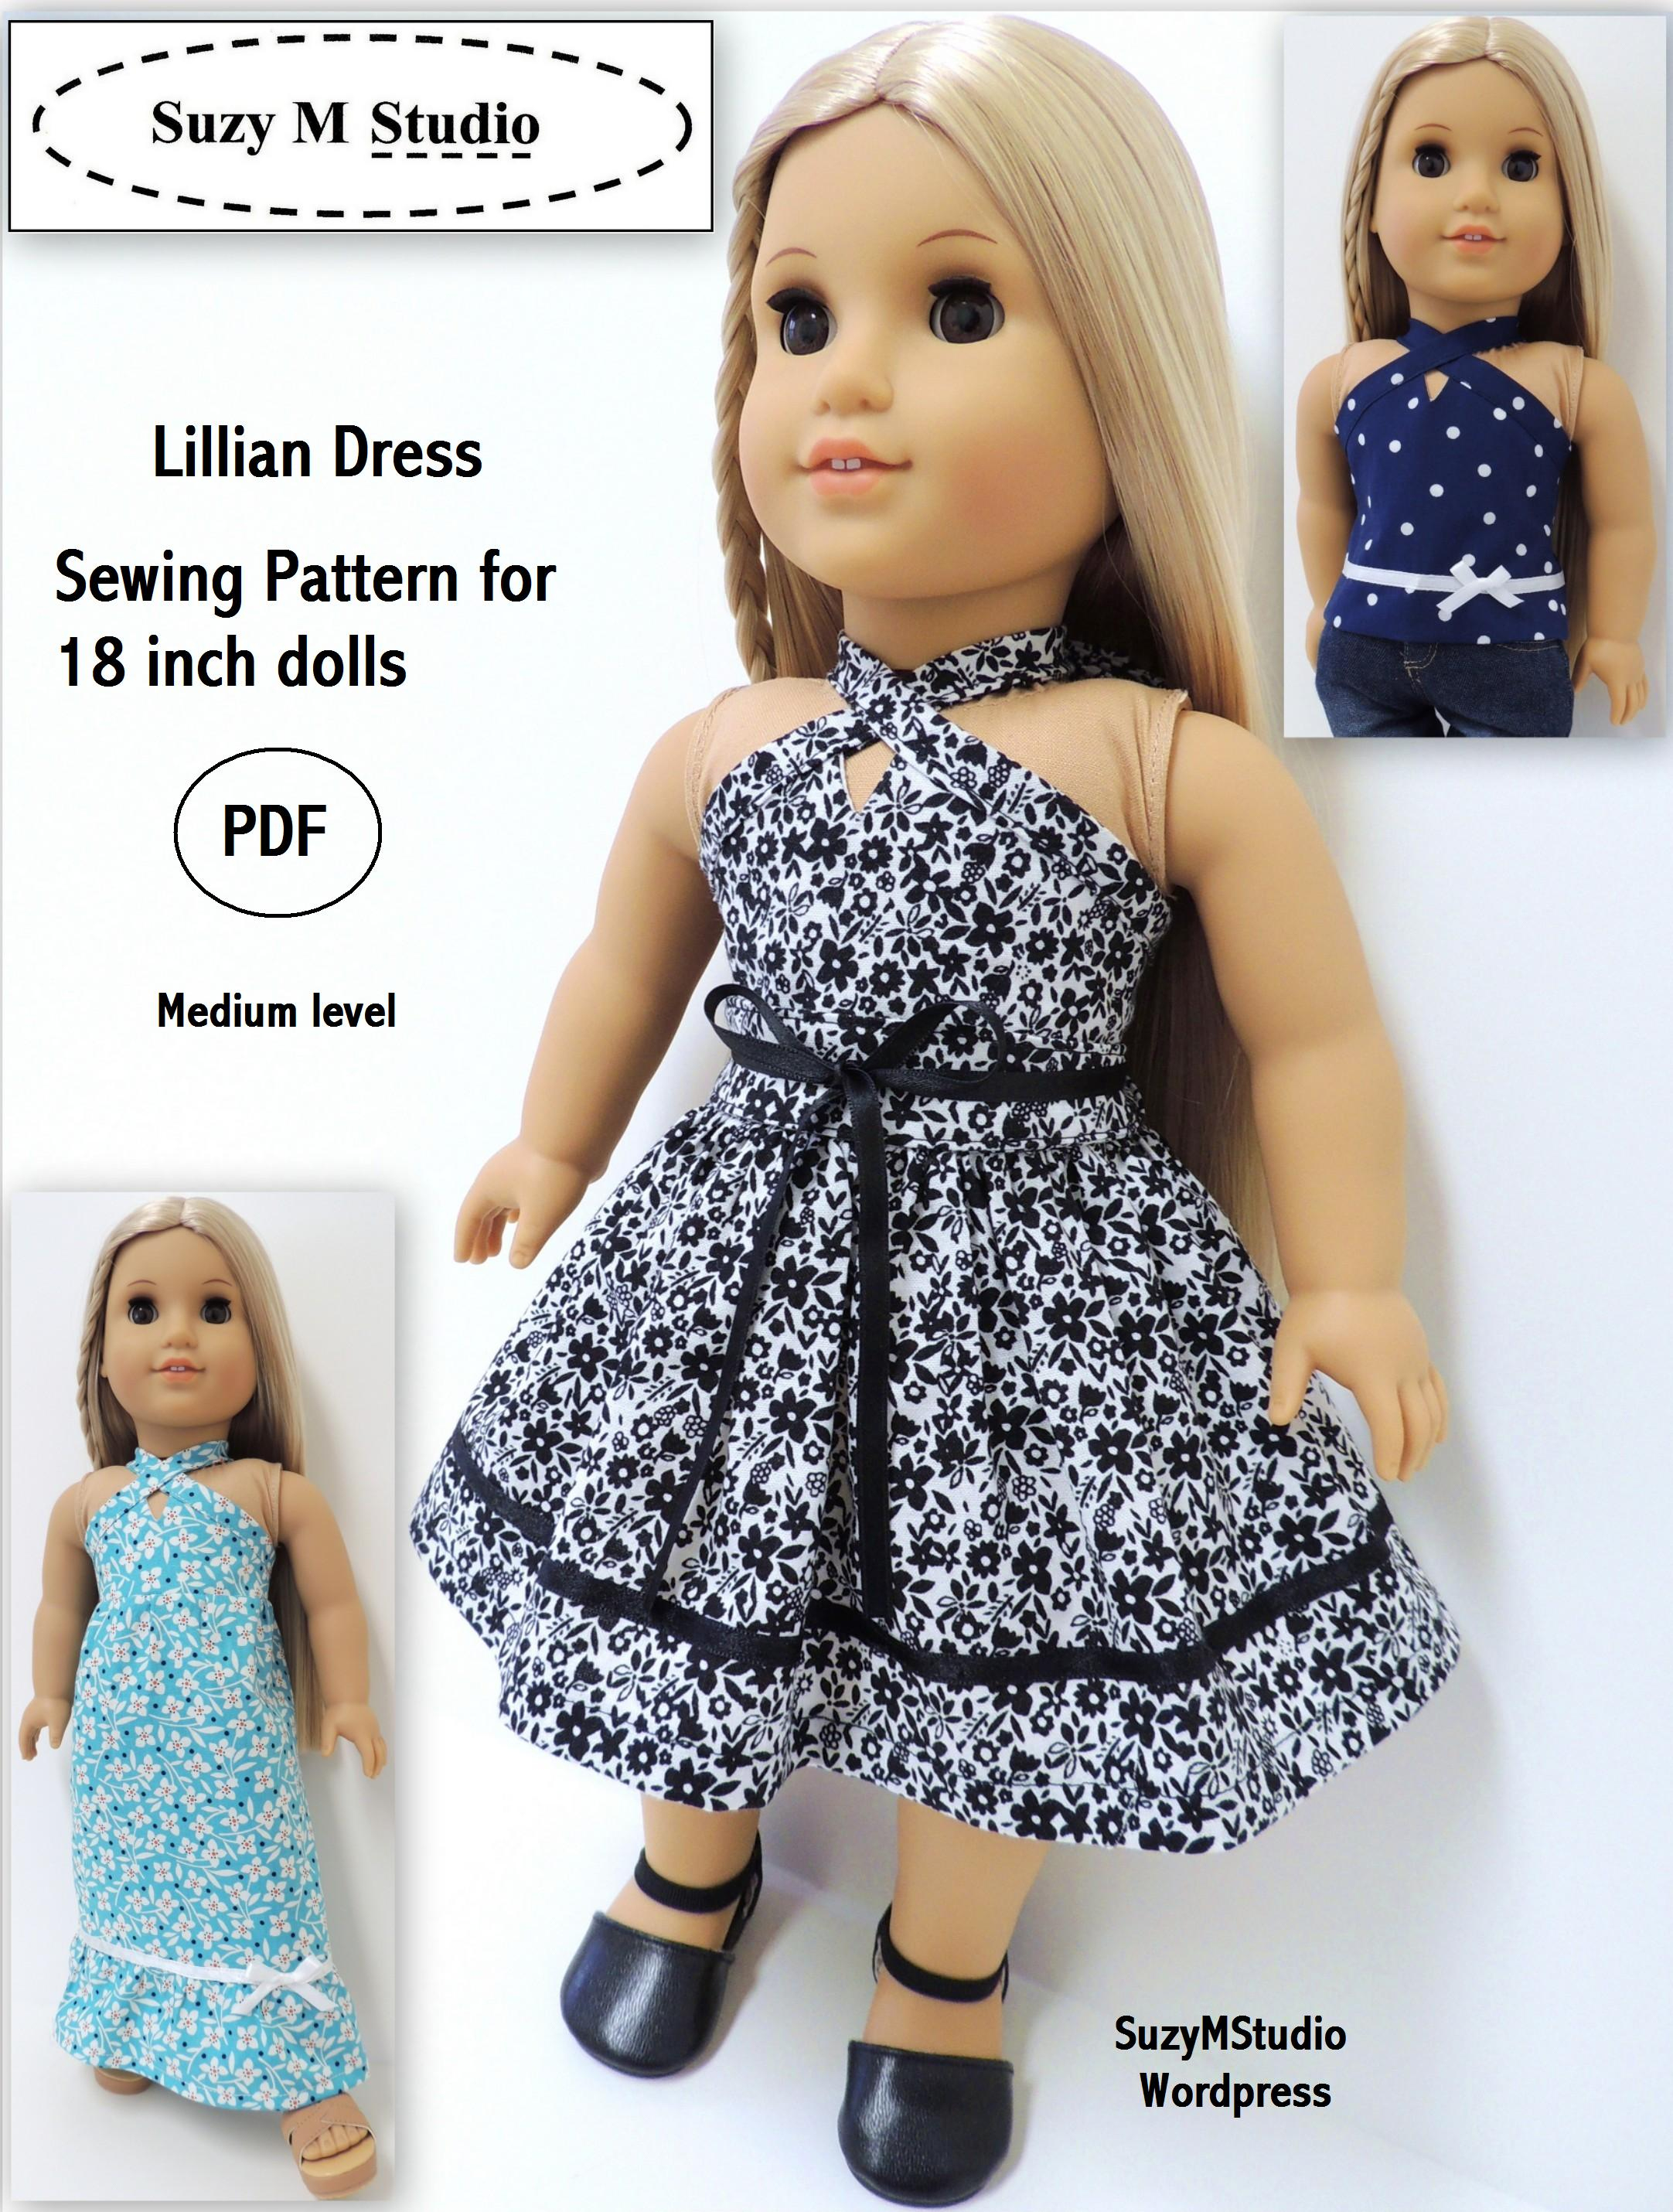 Suzymstudio | Doll Clothes And Sewing Patterns - Free Printable Crochet Doll Clothes Patterns For 18 Inch Dolls